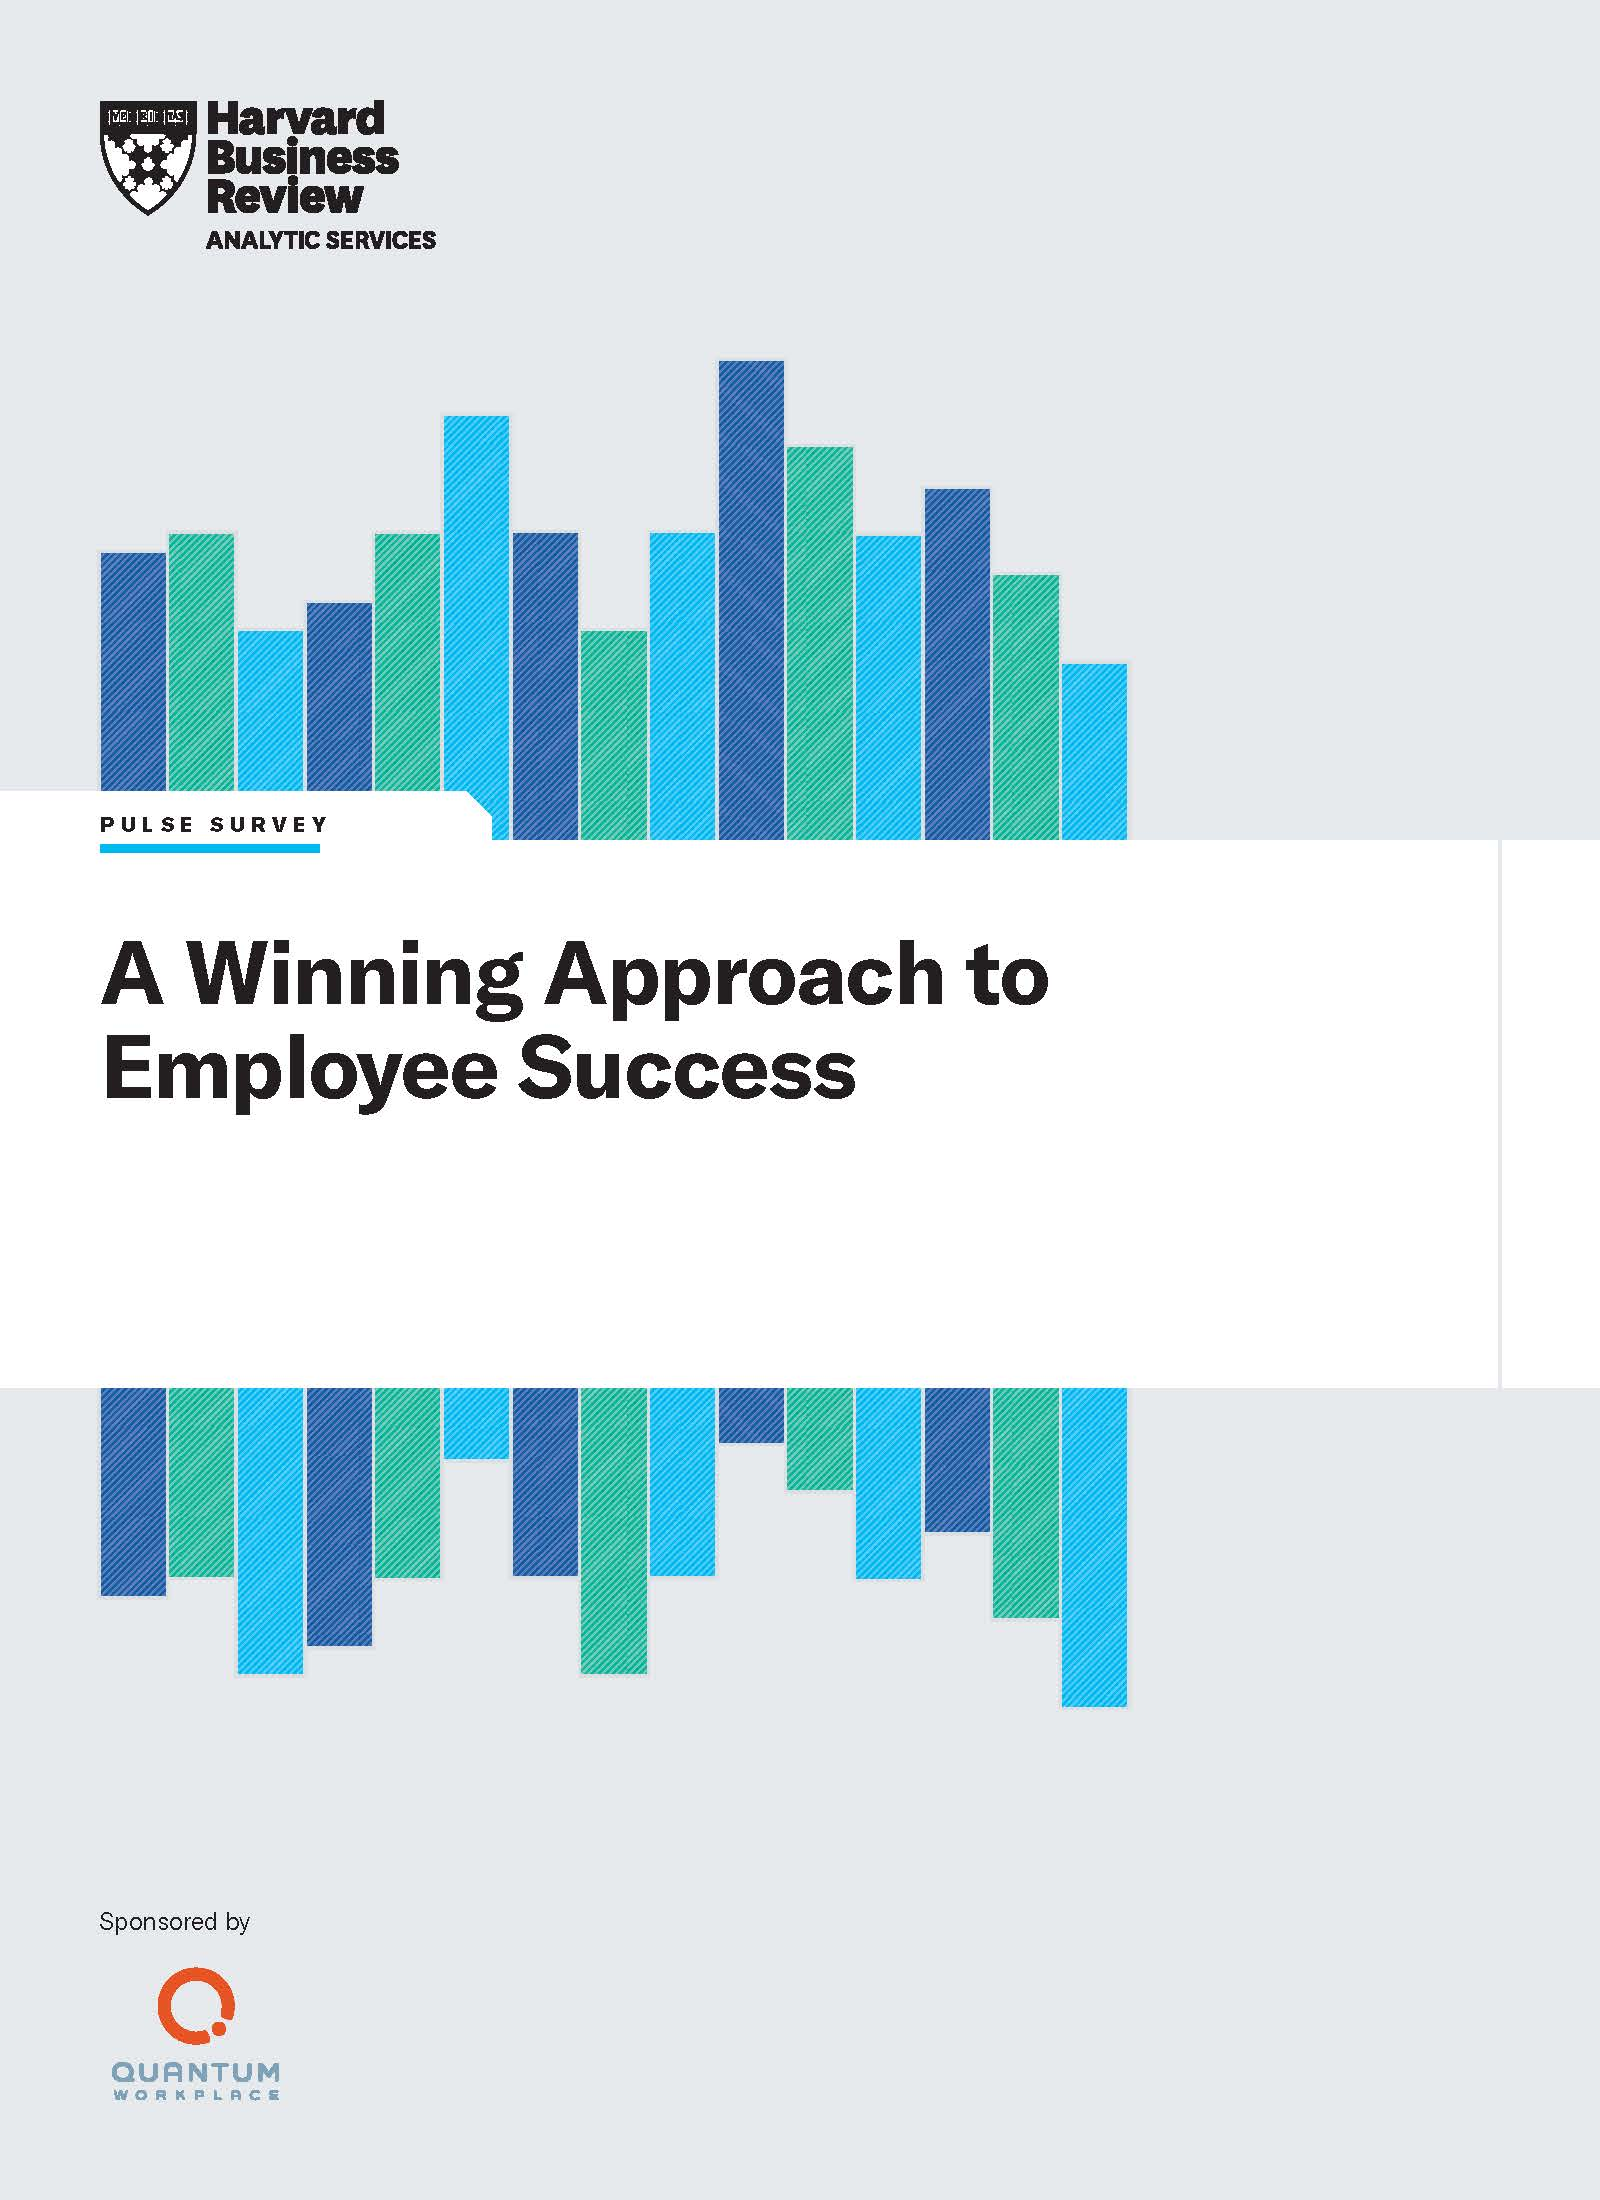 Measuring ROI on Employee Success